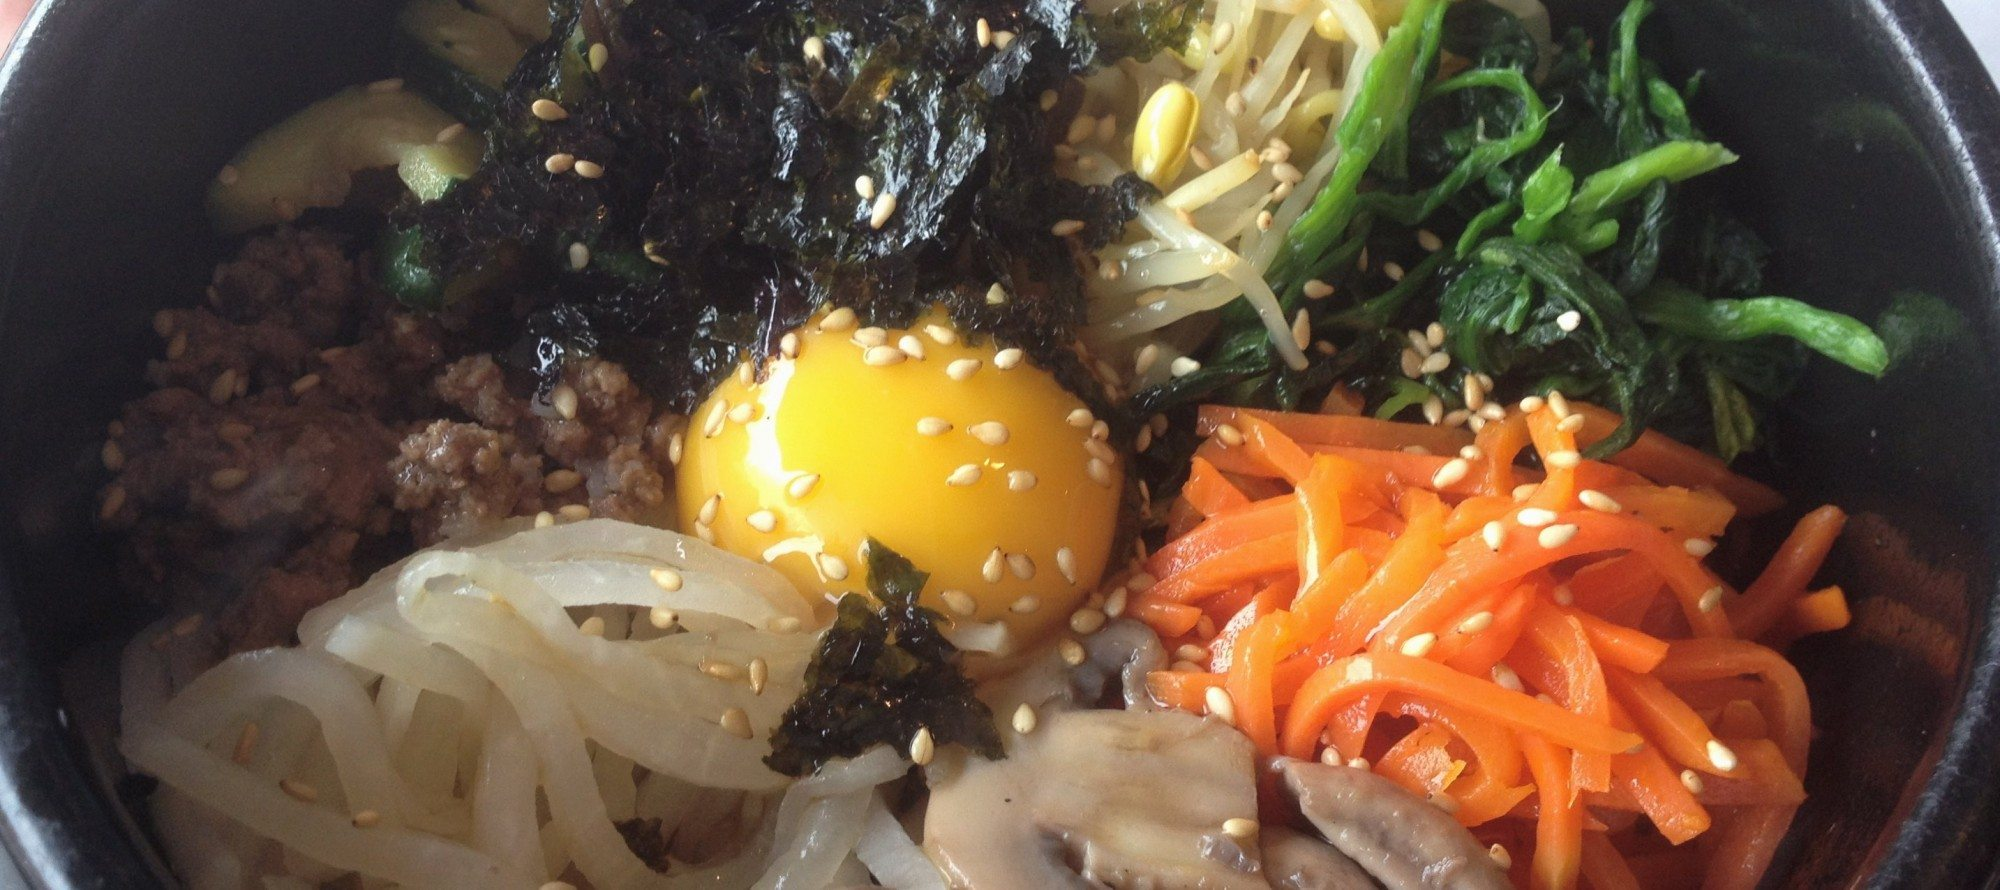 WEEKLY LUNCH PICK: Get initiated into Korea's famous dish — a colourful bowl of bibimbap at Le Kim Chi